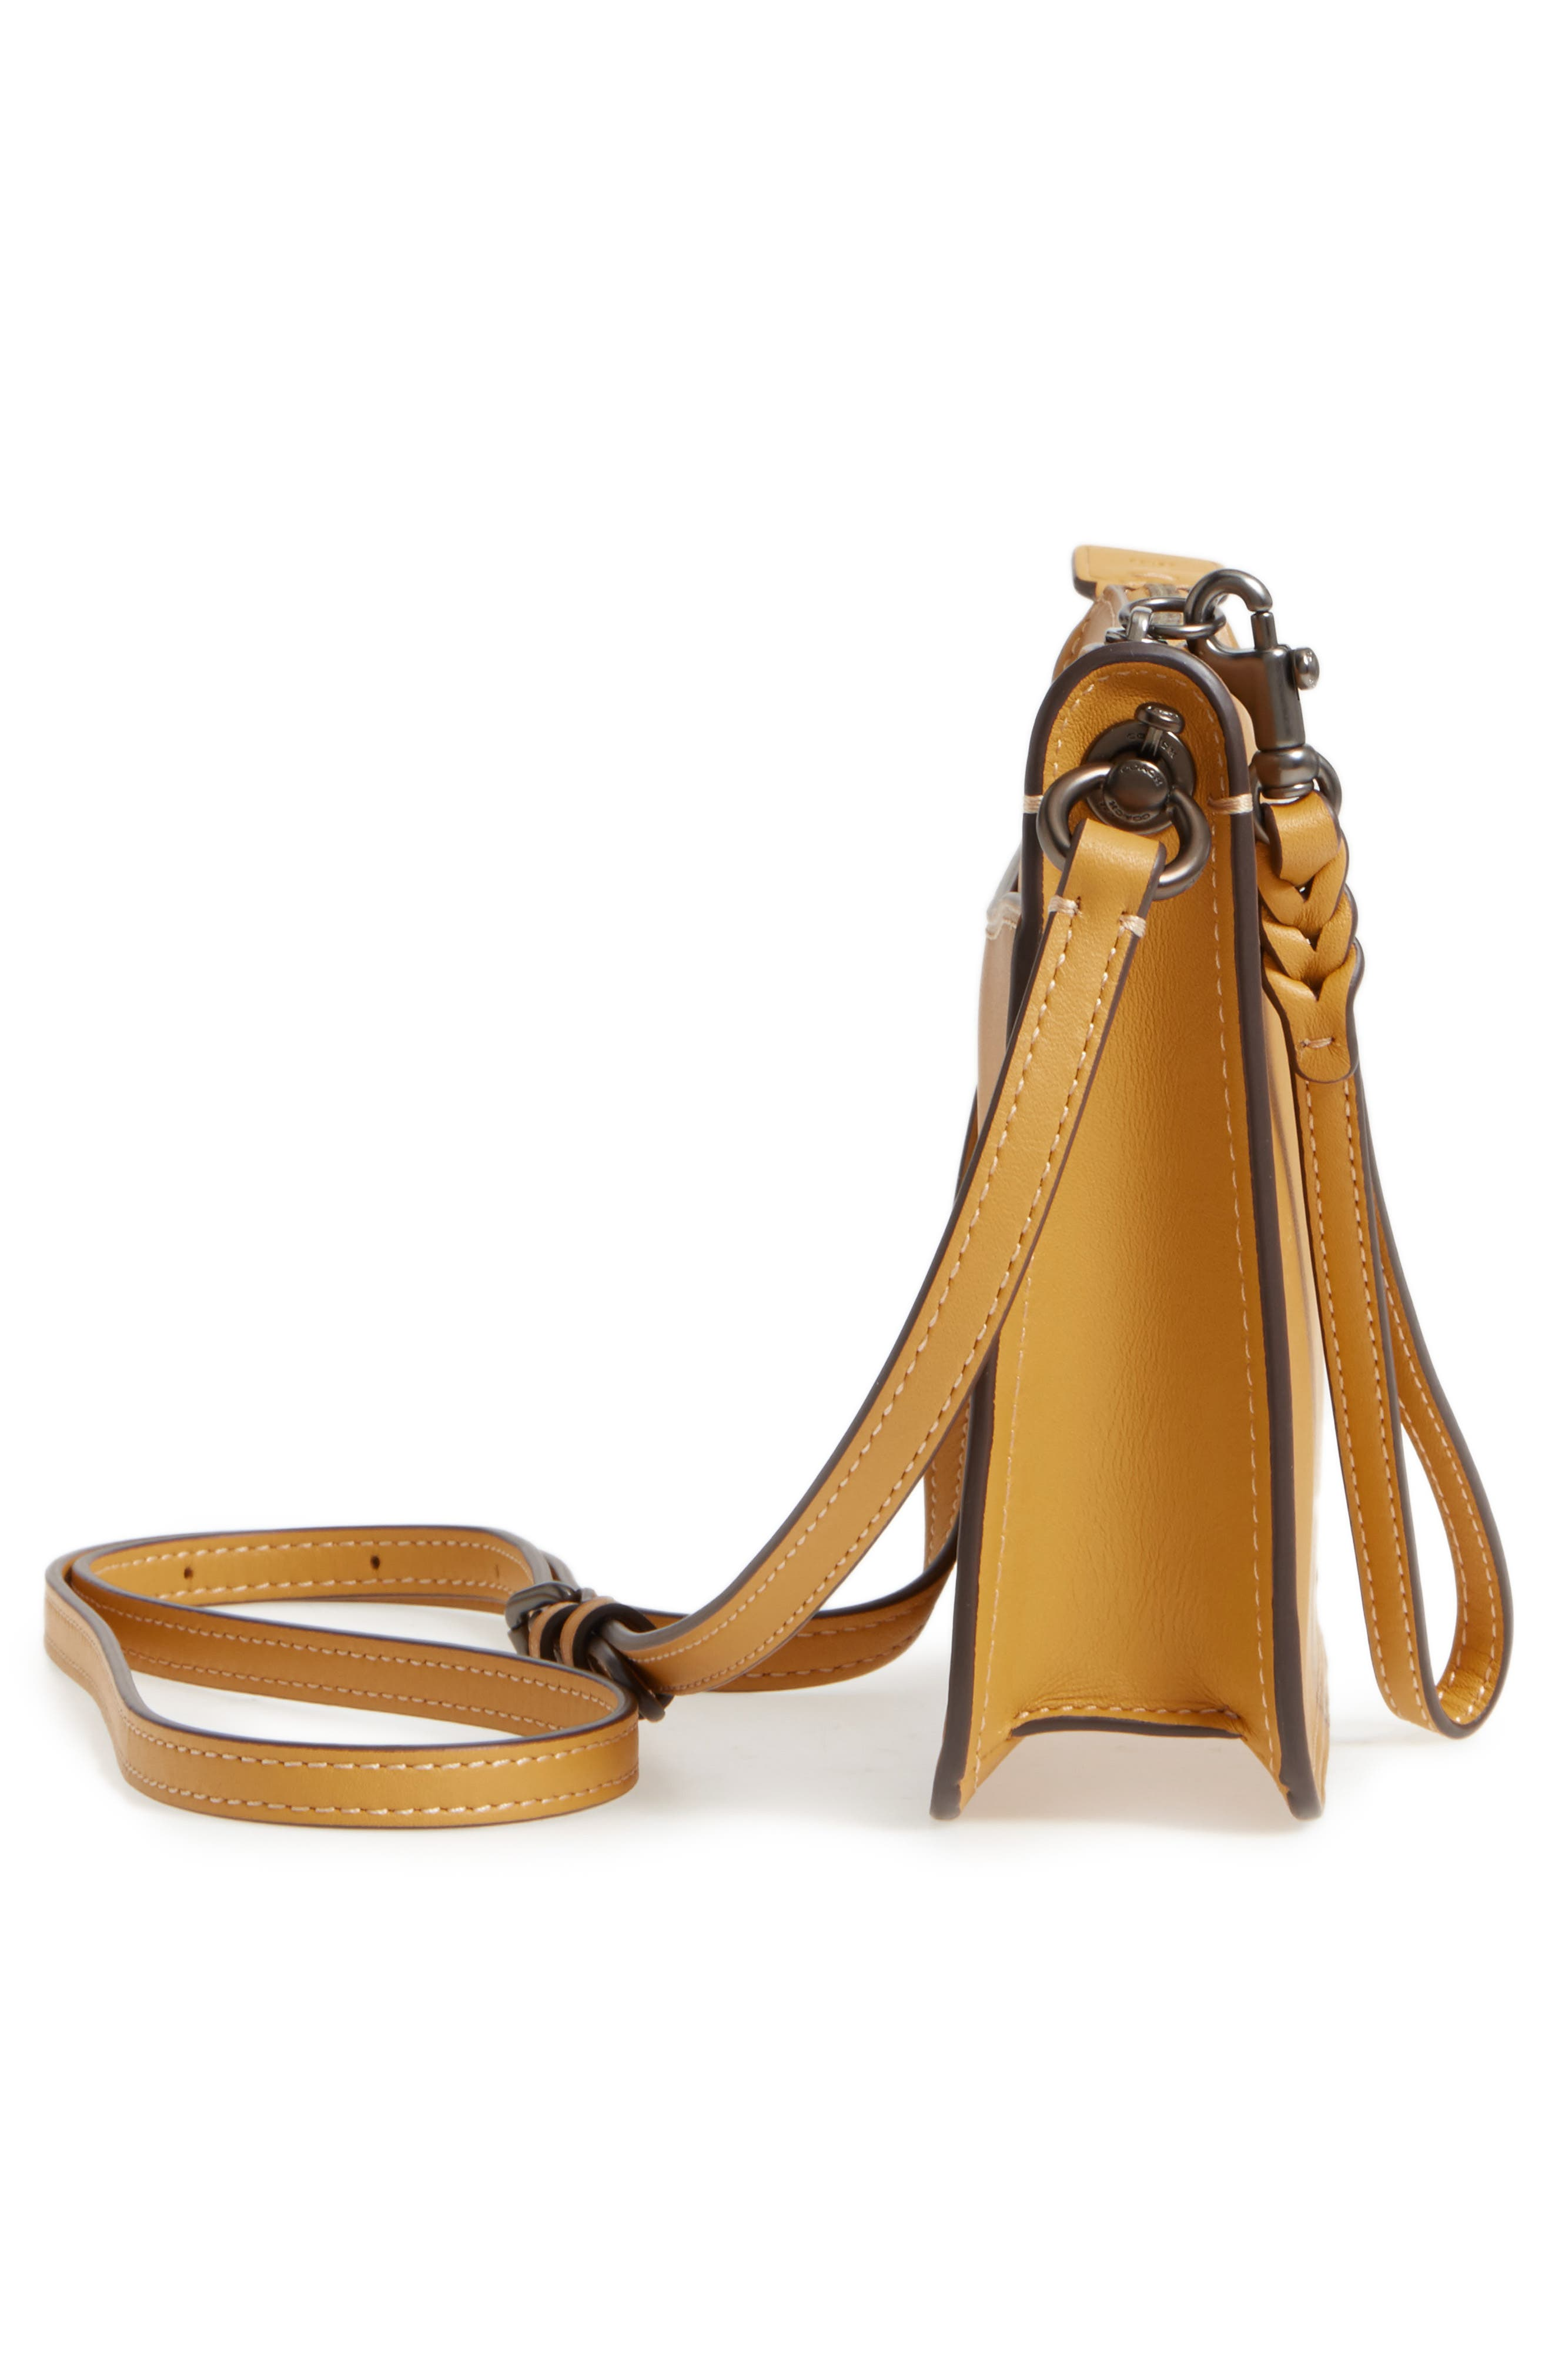 Soho Leather Crossbody Bag,                             Alternate thumbnail 5, color,                             Flax